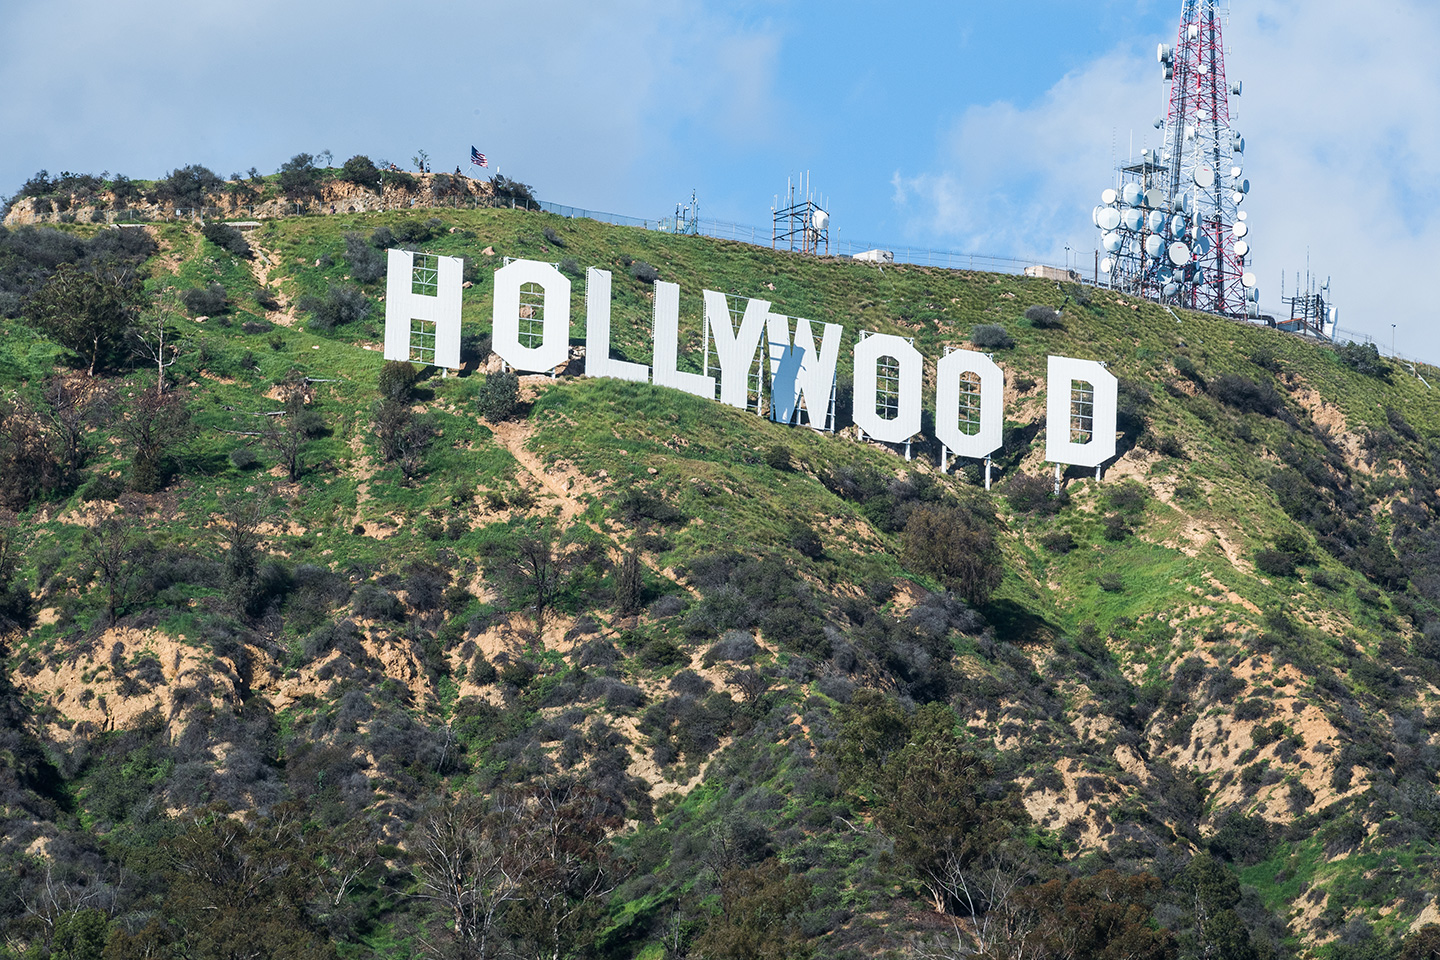 hollywood sign angeles los queen con identity down hunting boycott morgan james daily conservative studios pro insidehook contributor fortune